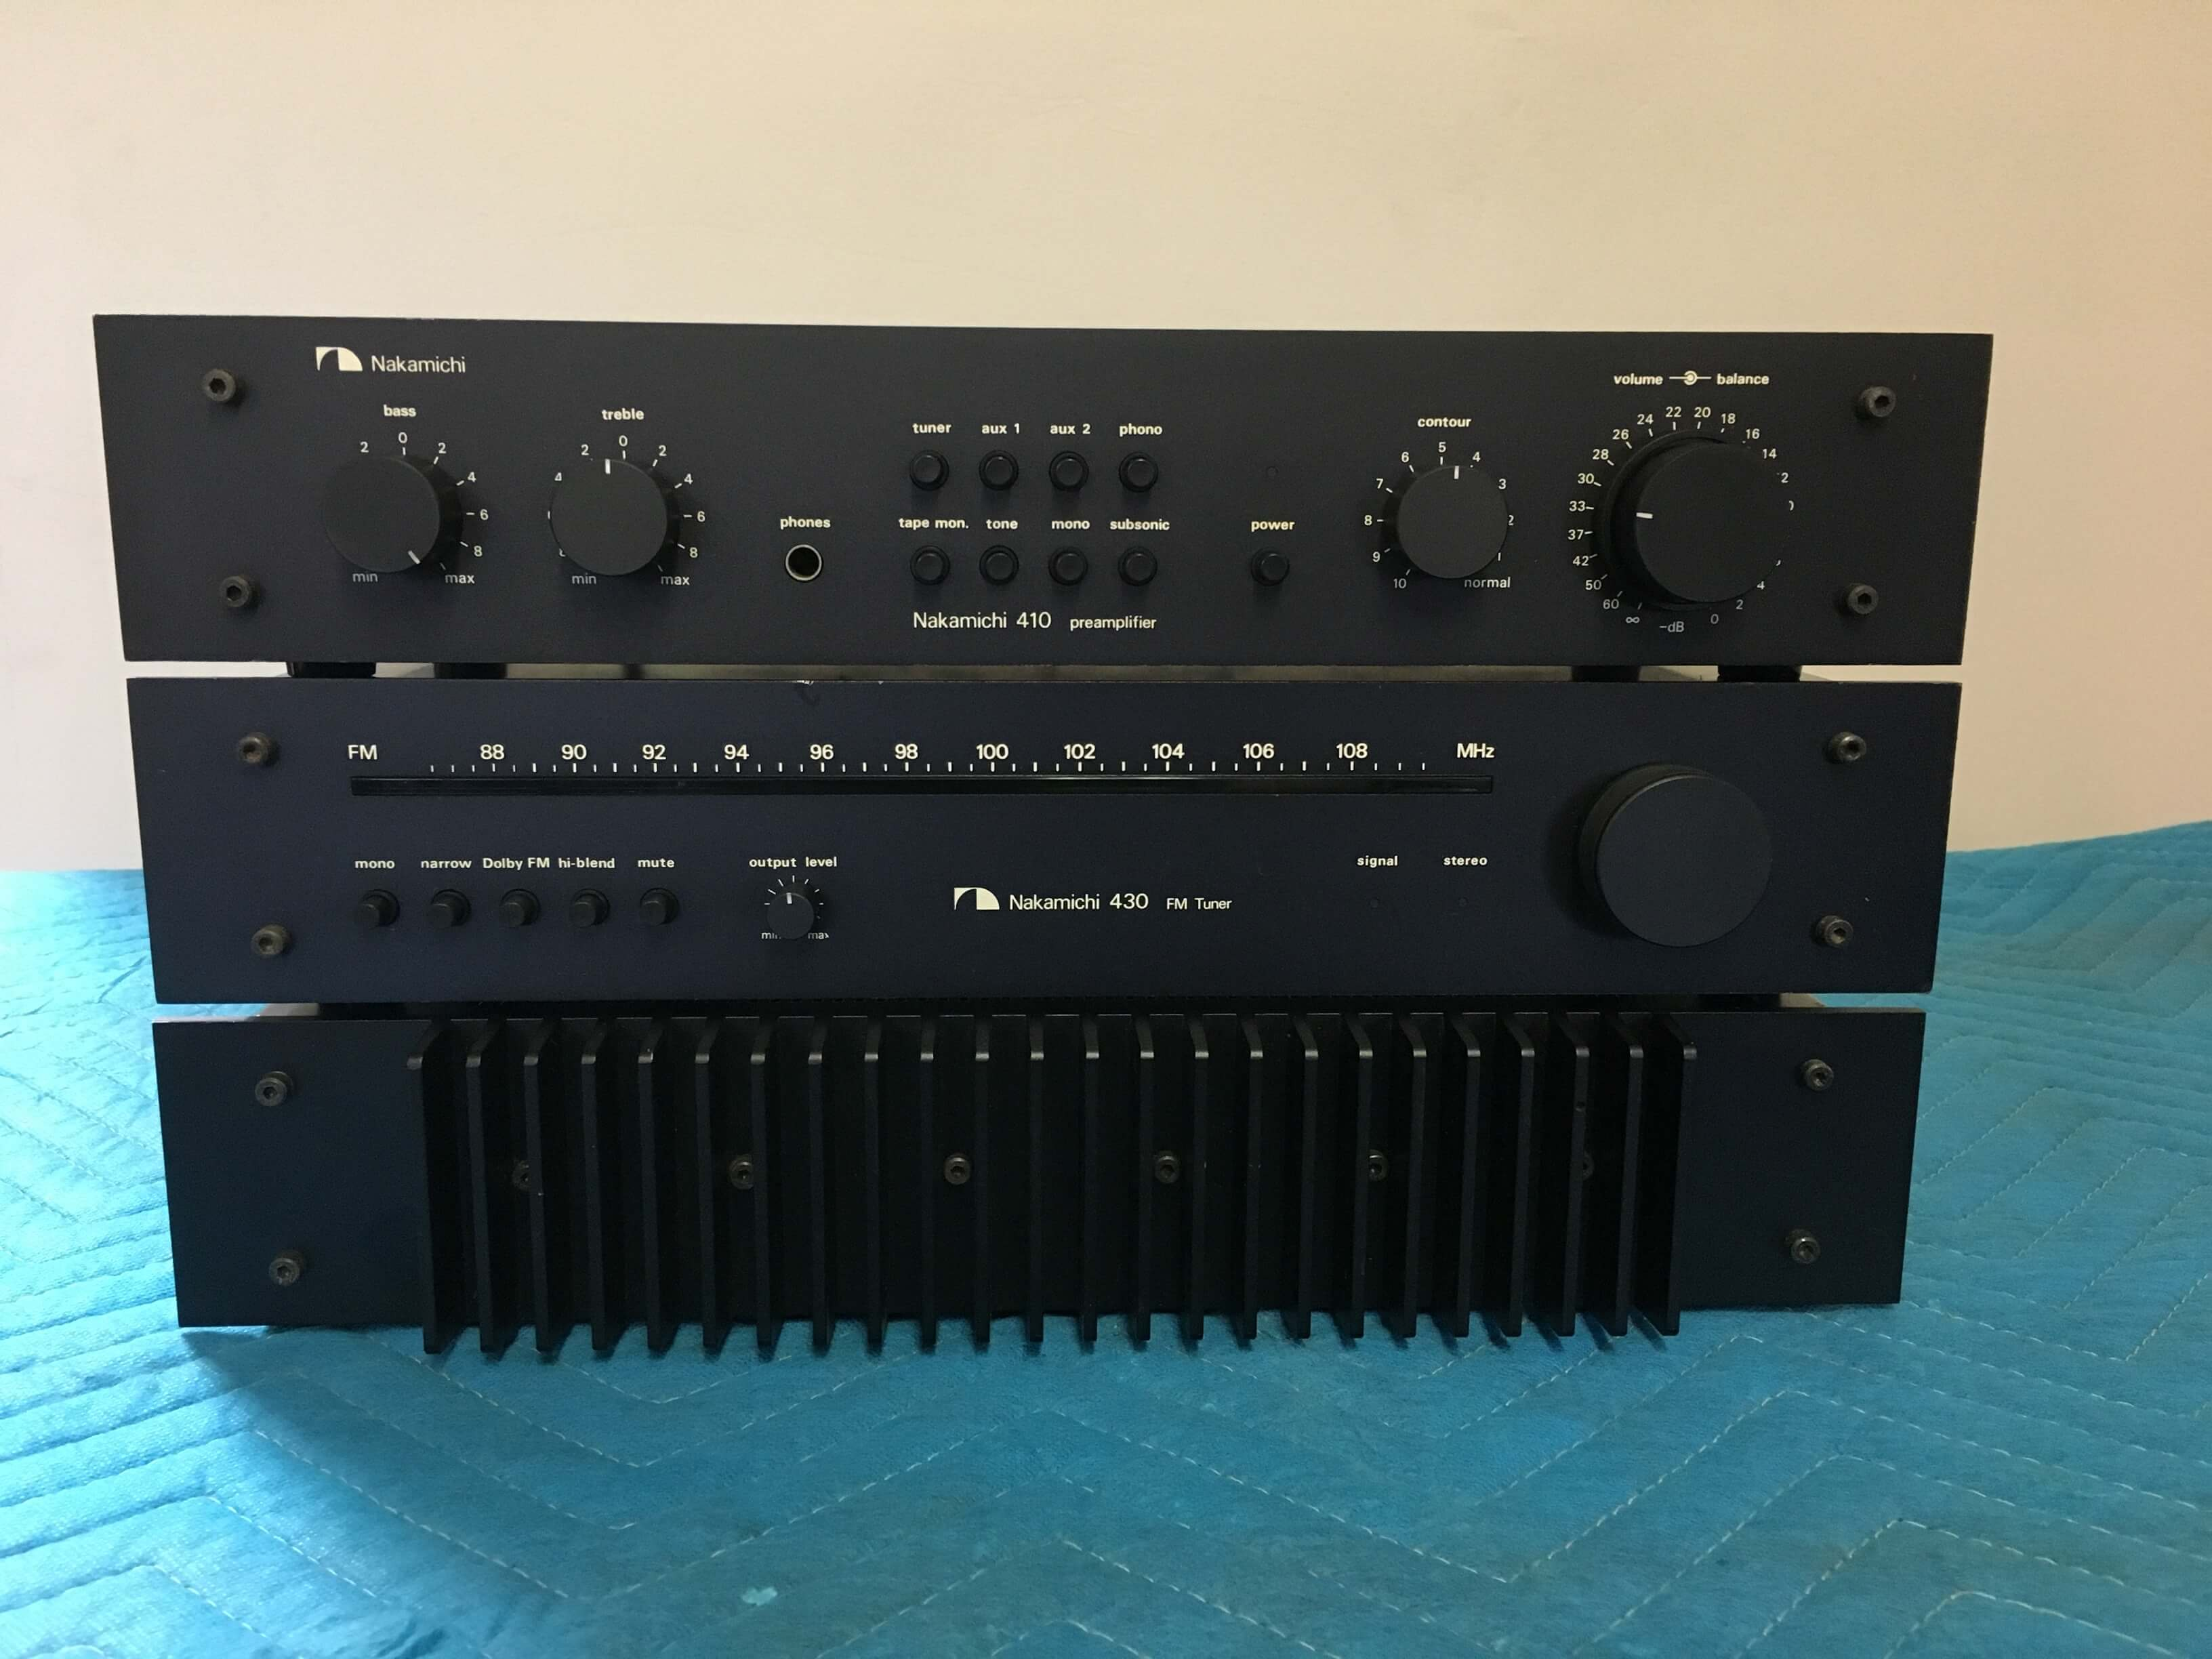 Nakamichi 410 preamplifier, 430 FM tuner and 420 amplifier set